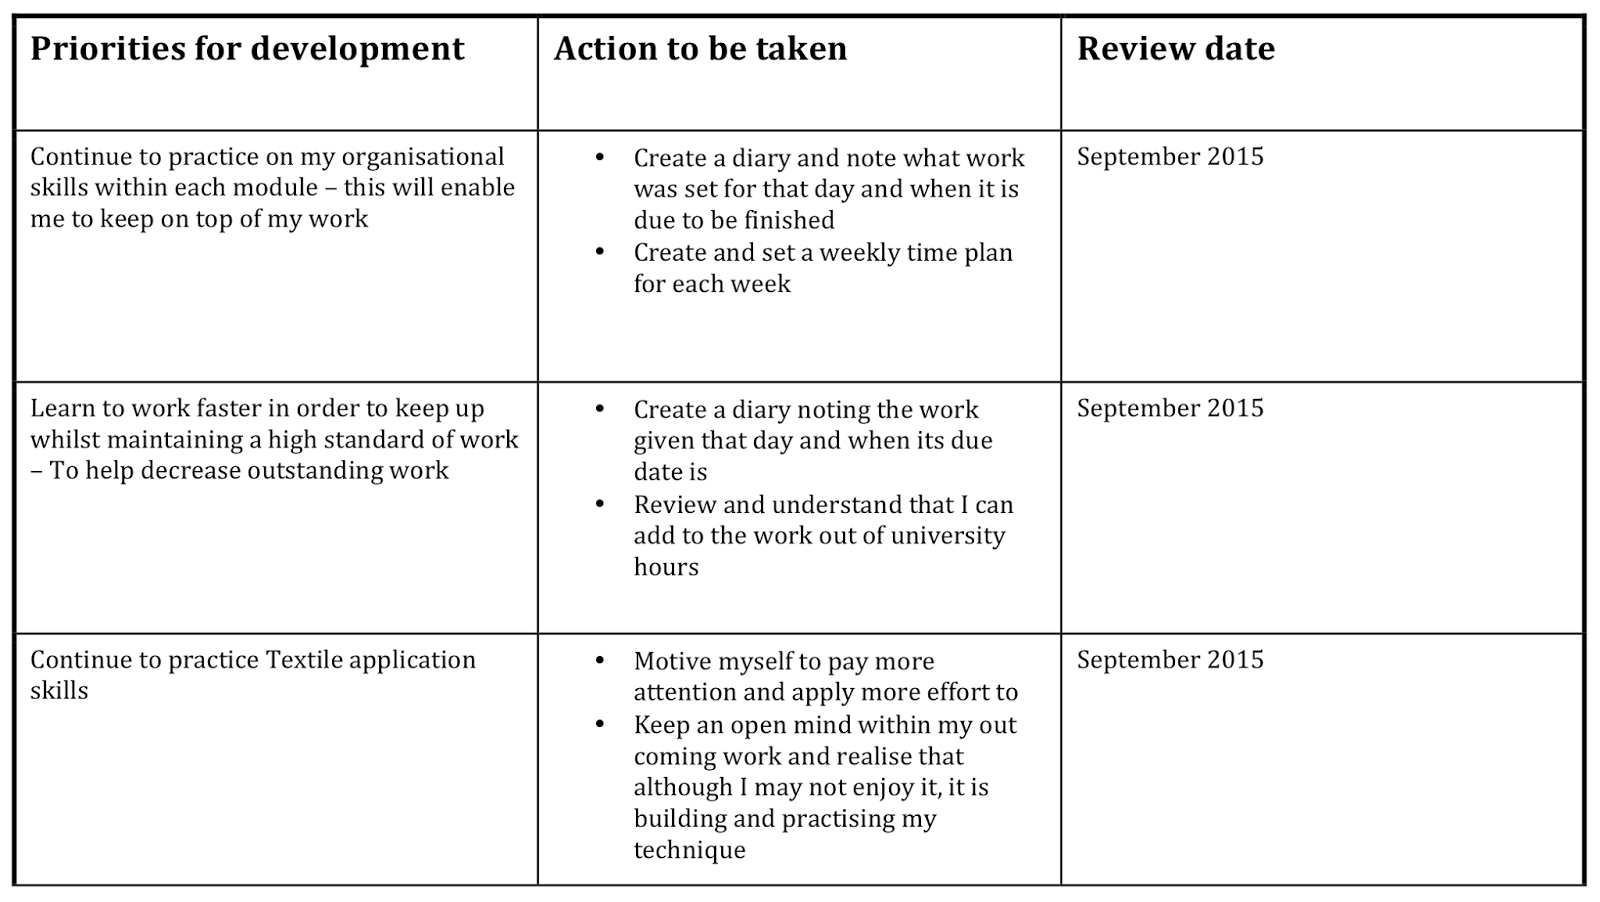 personal development plan example essay The personal development plan is very important in enabling the tracking of developmental changes that are necessary for the achievement of set goals planning is very important since it provides a medium for a person to set goals and decide how they will have to be achieved.